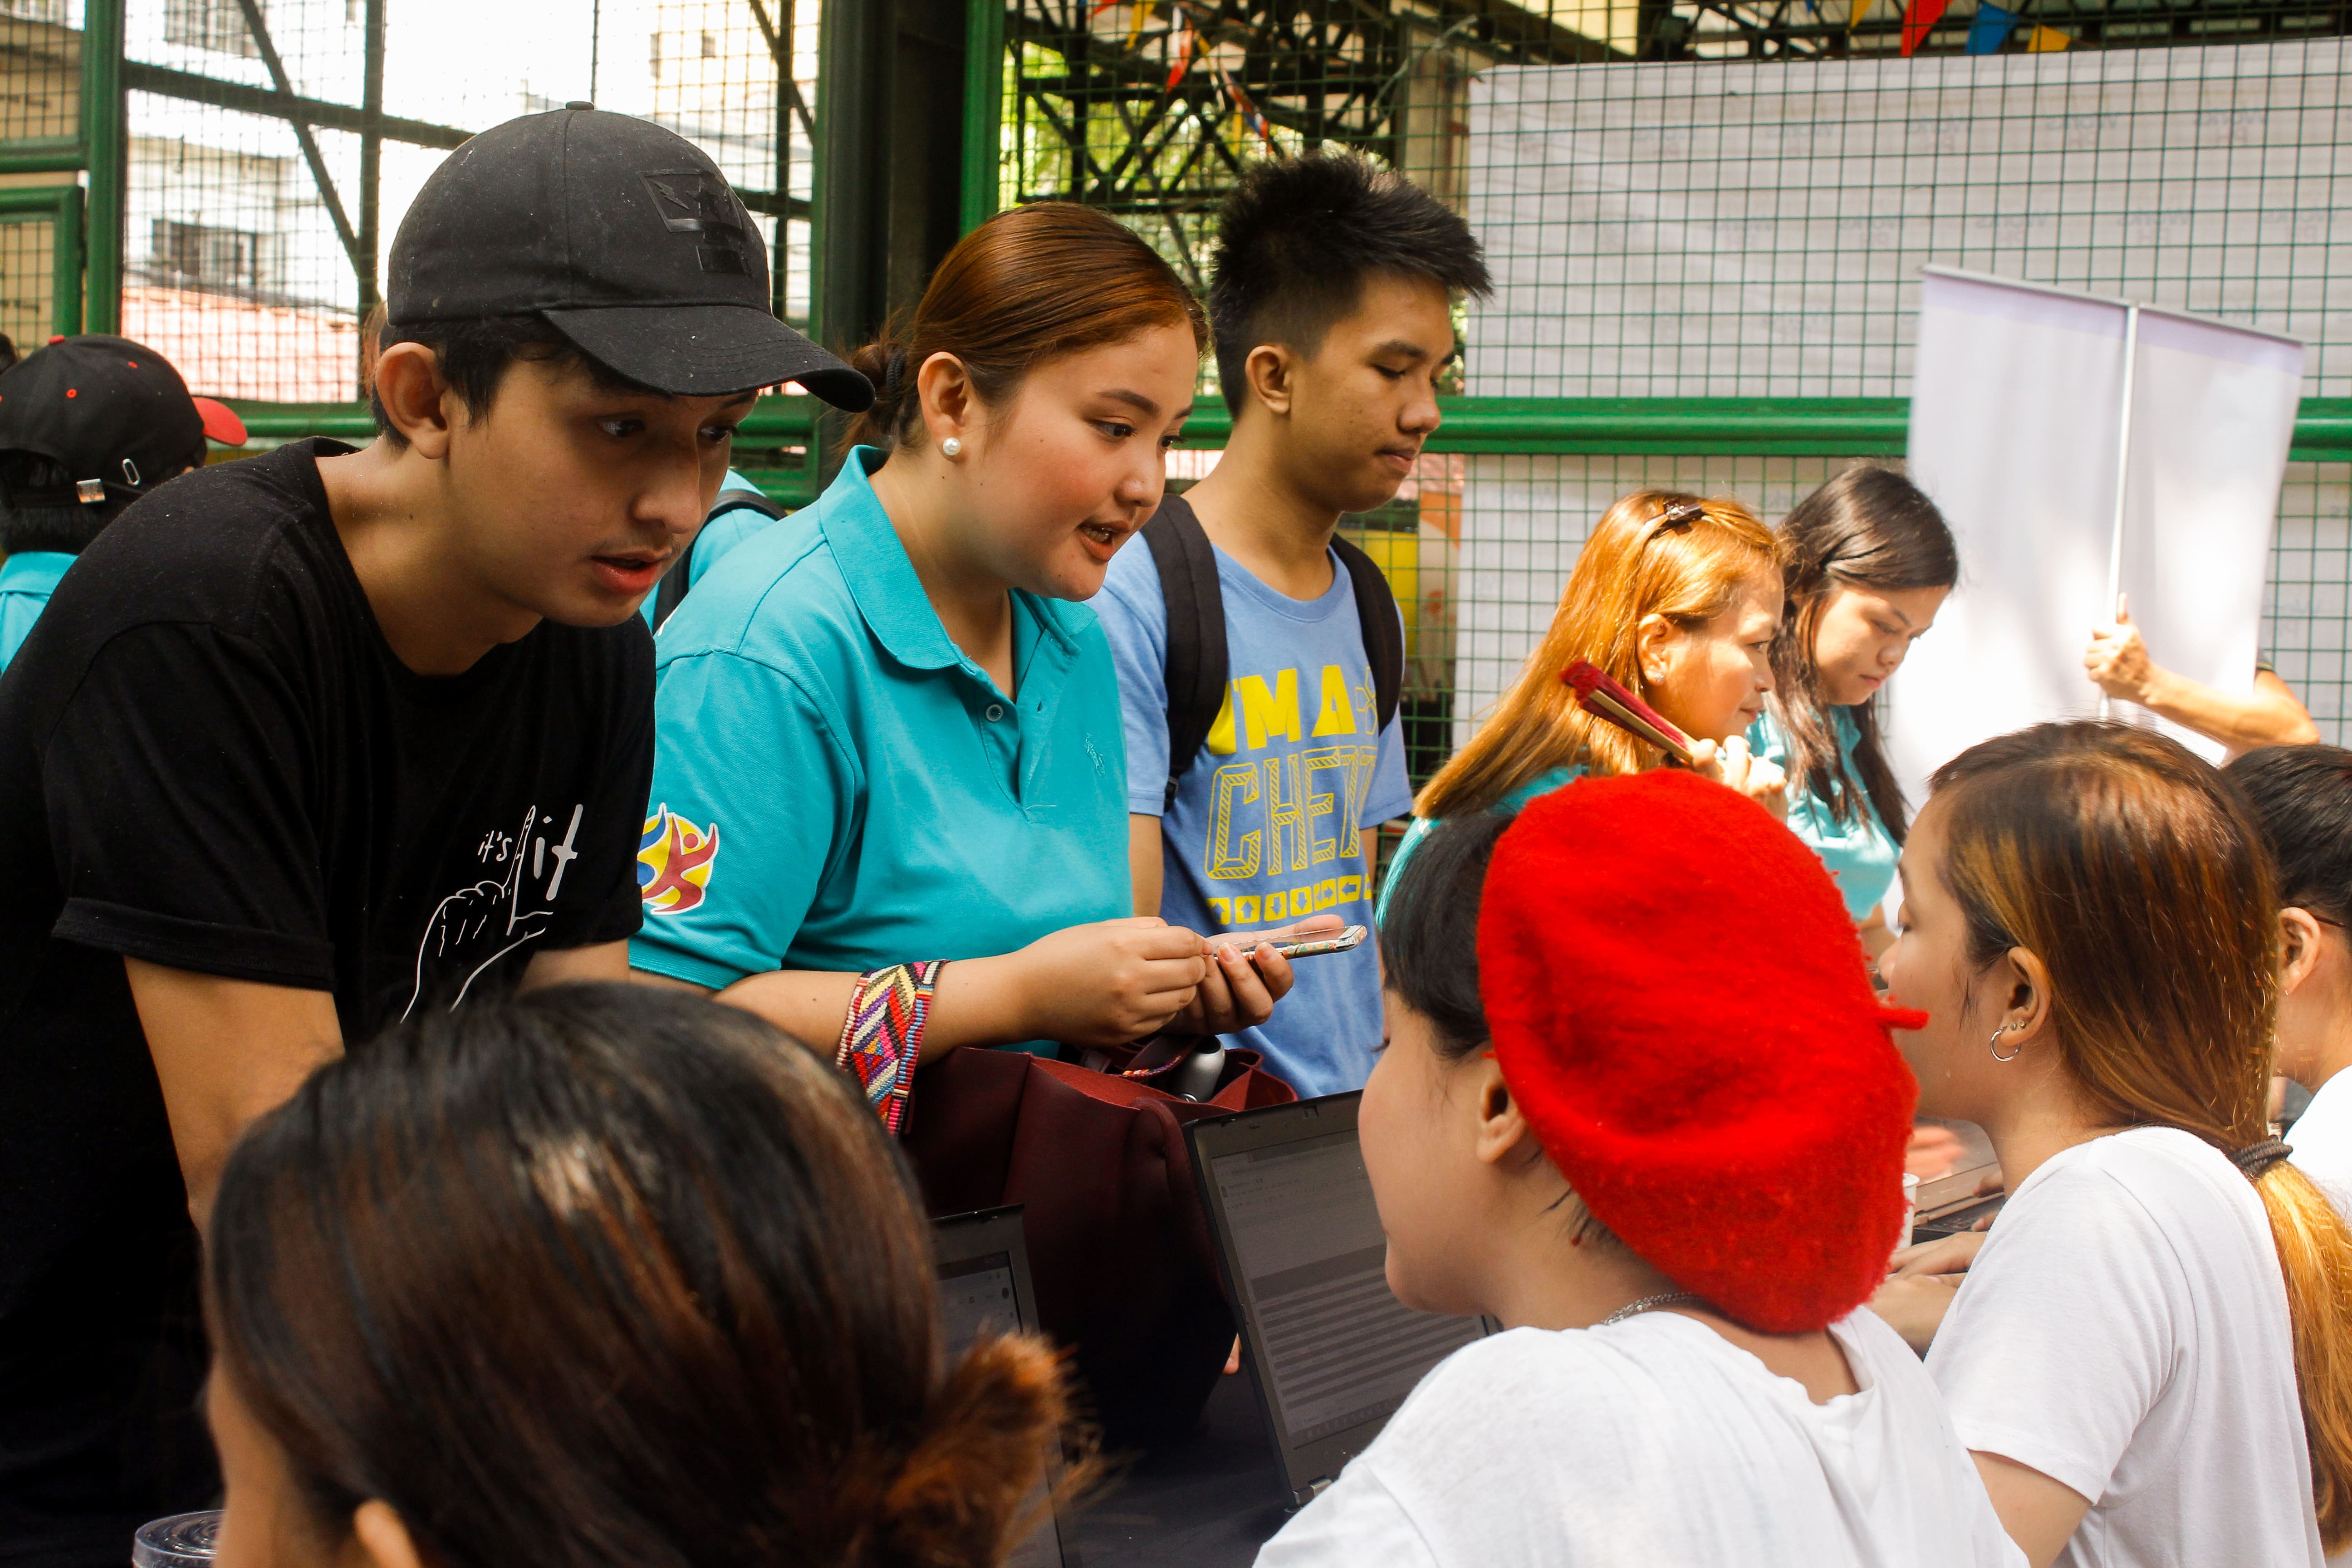 young people inquiring at an information booth